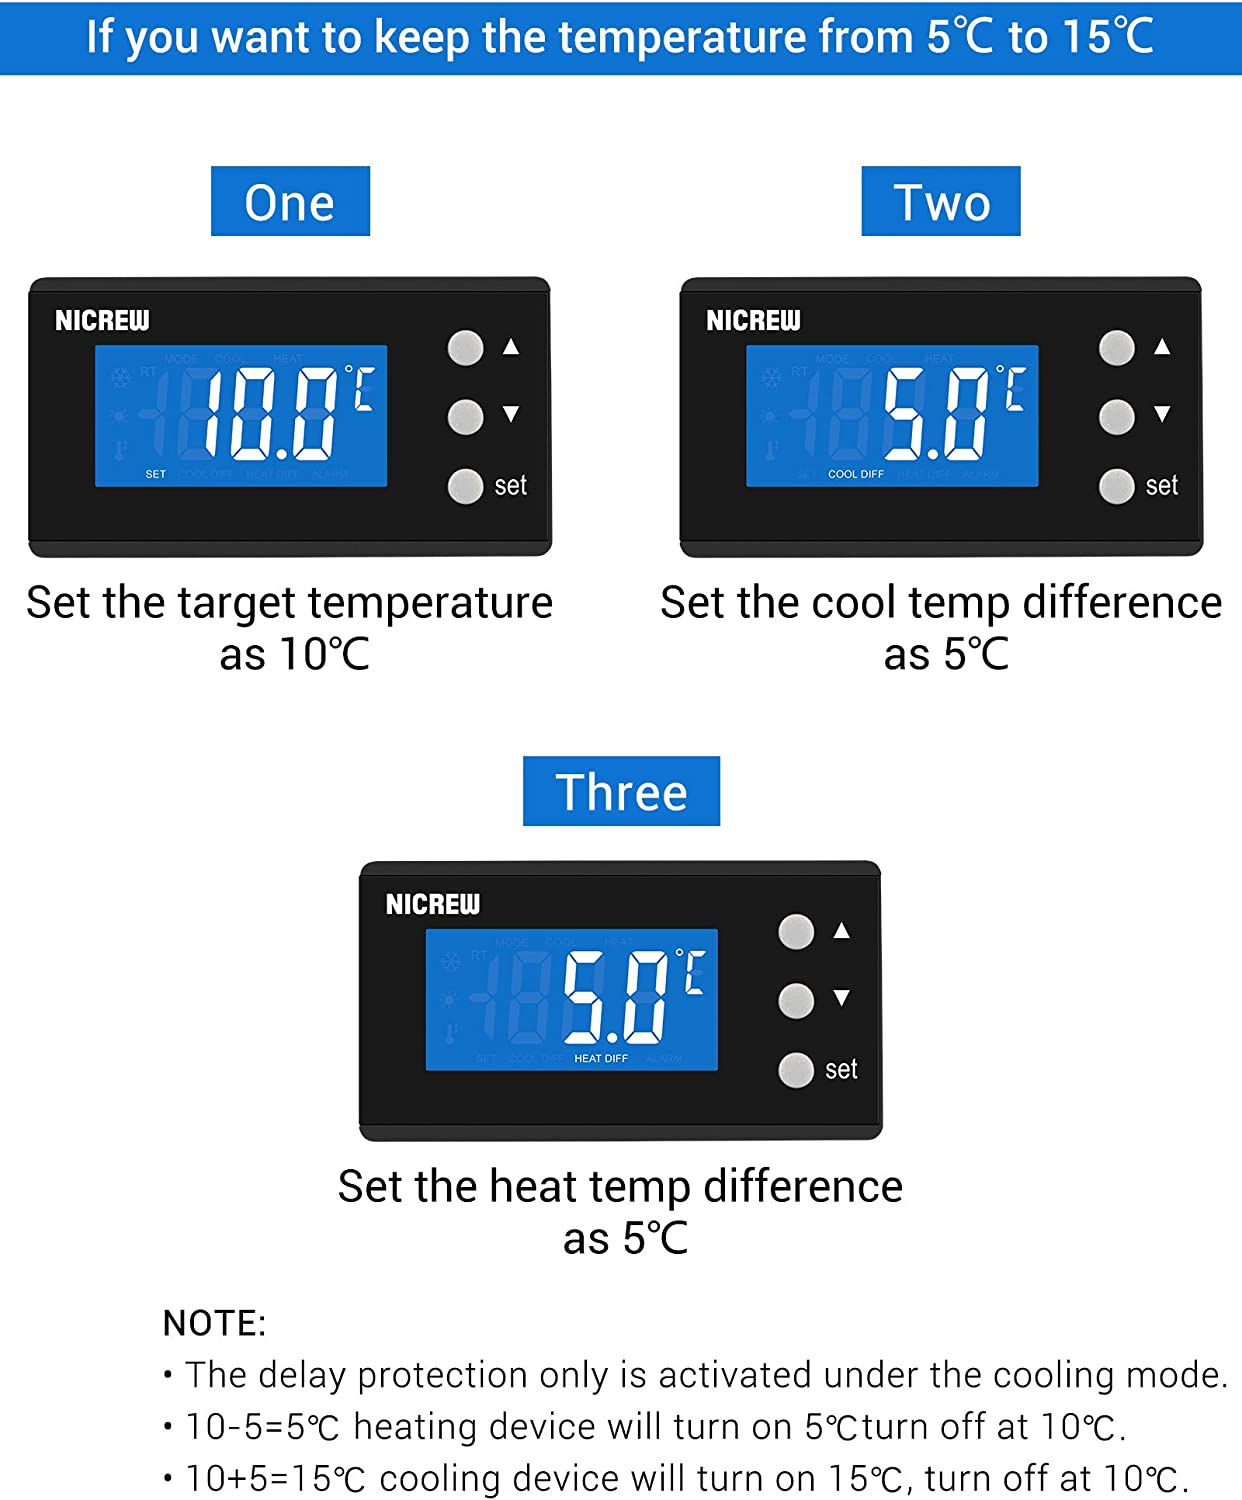 Aquarium and Reptile Vivarium Incubation NICREW Temperature Controller Heating and Cooling Thermostats for Home Brewing Grow Tent 1100W 220V